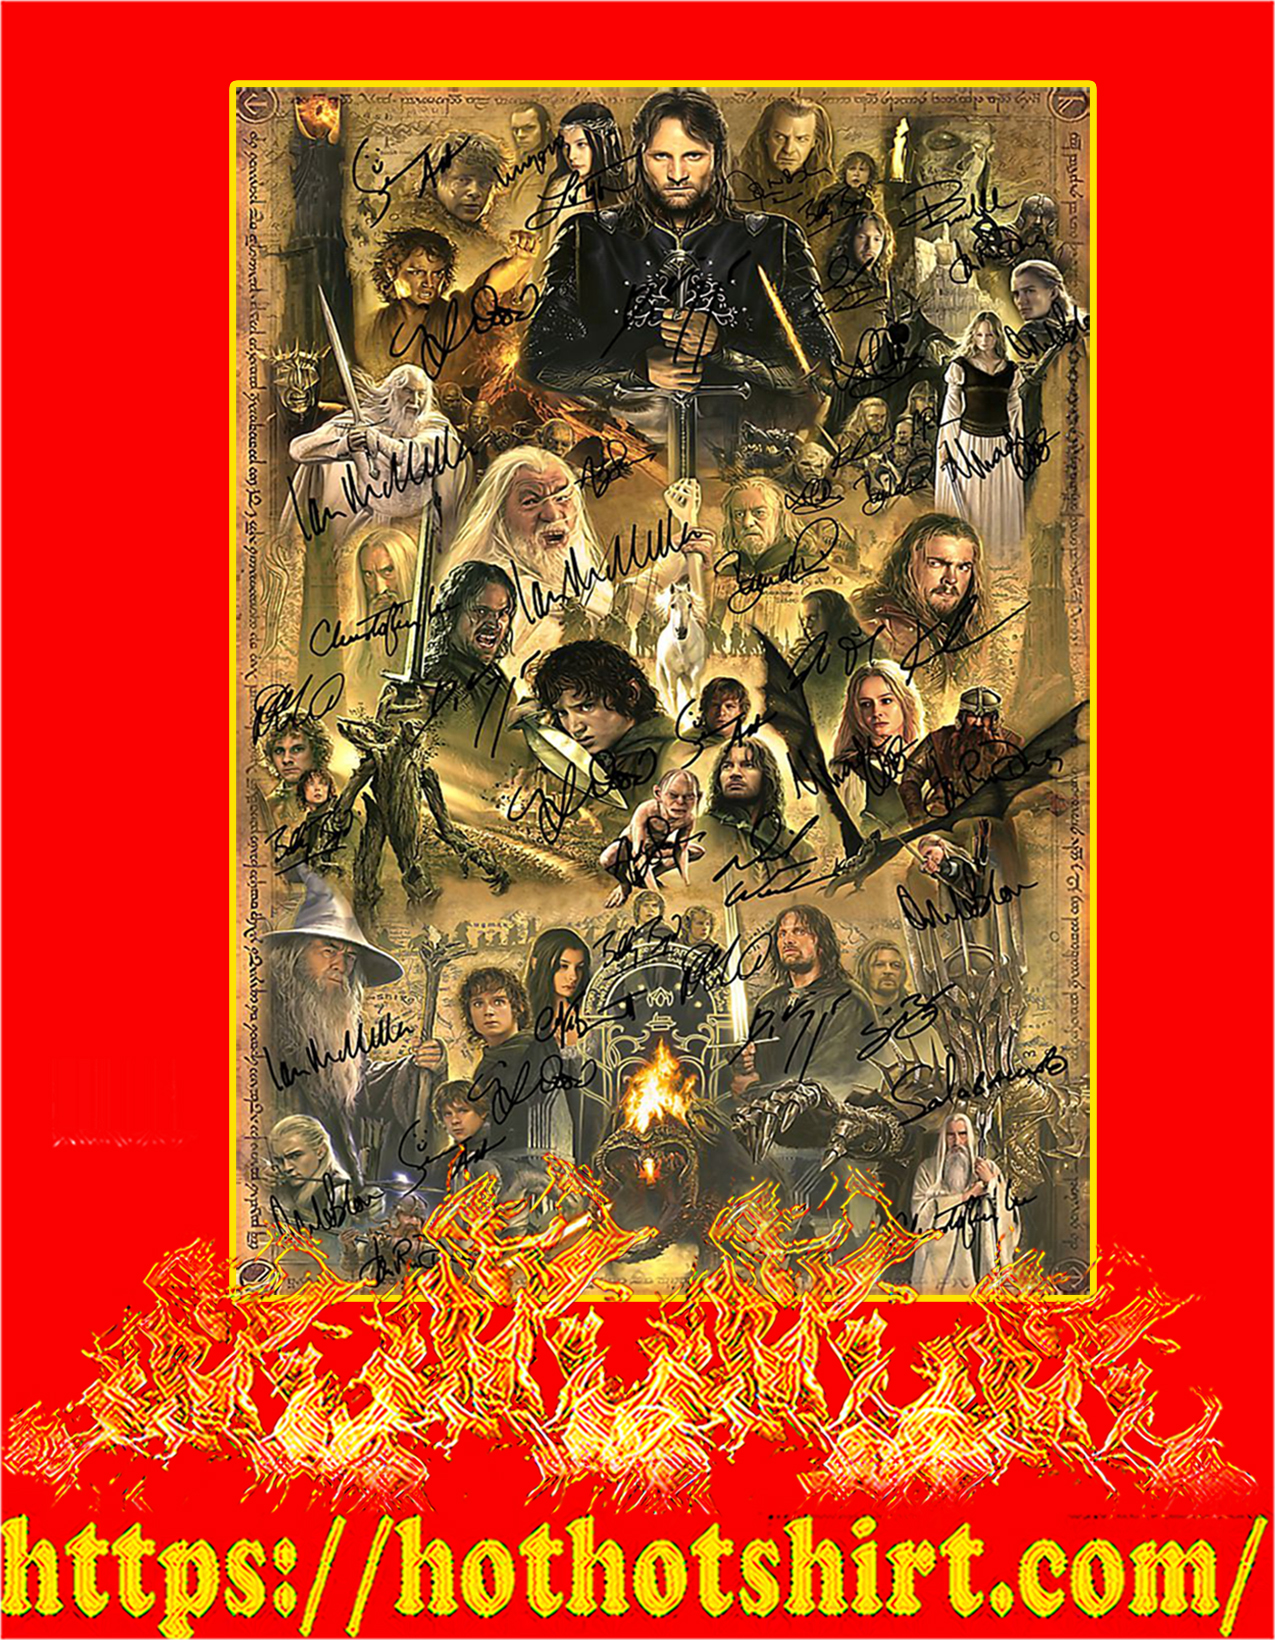 The lord of the rings actor signature poster - A2